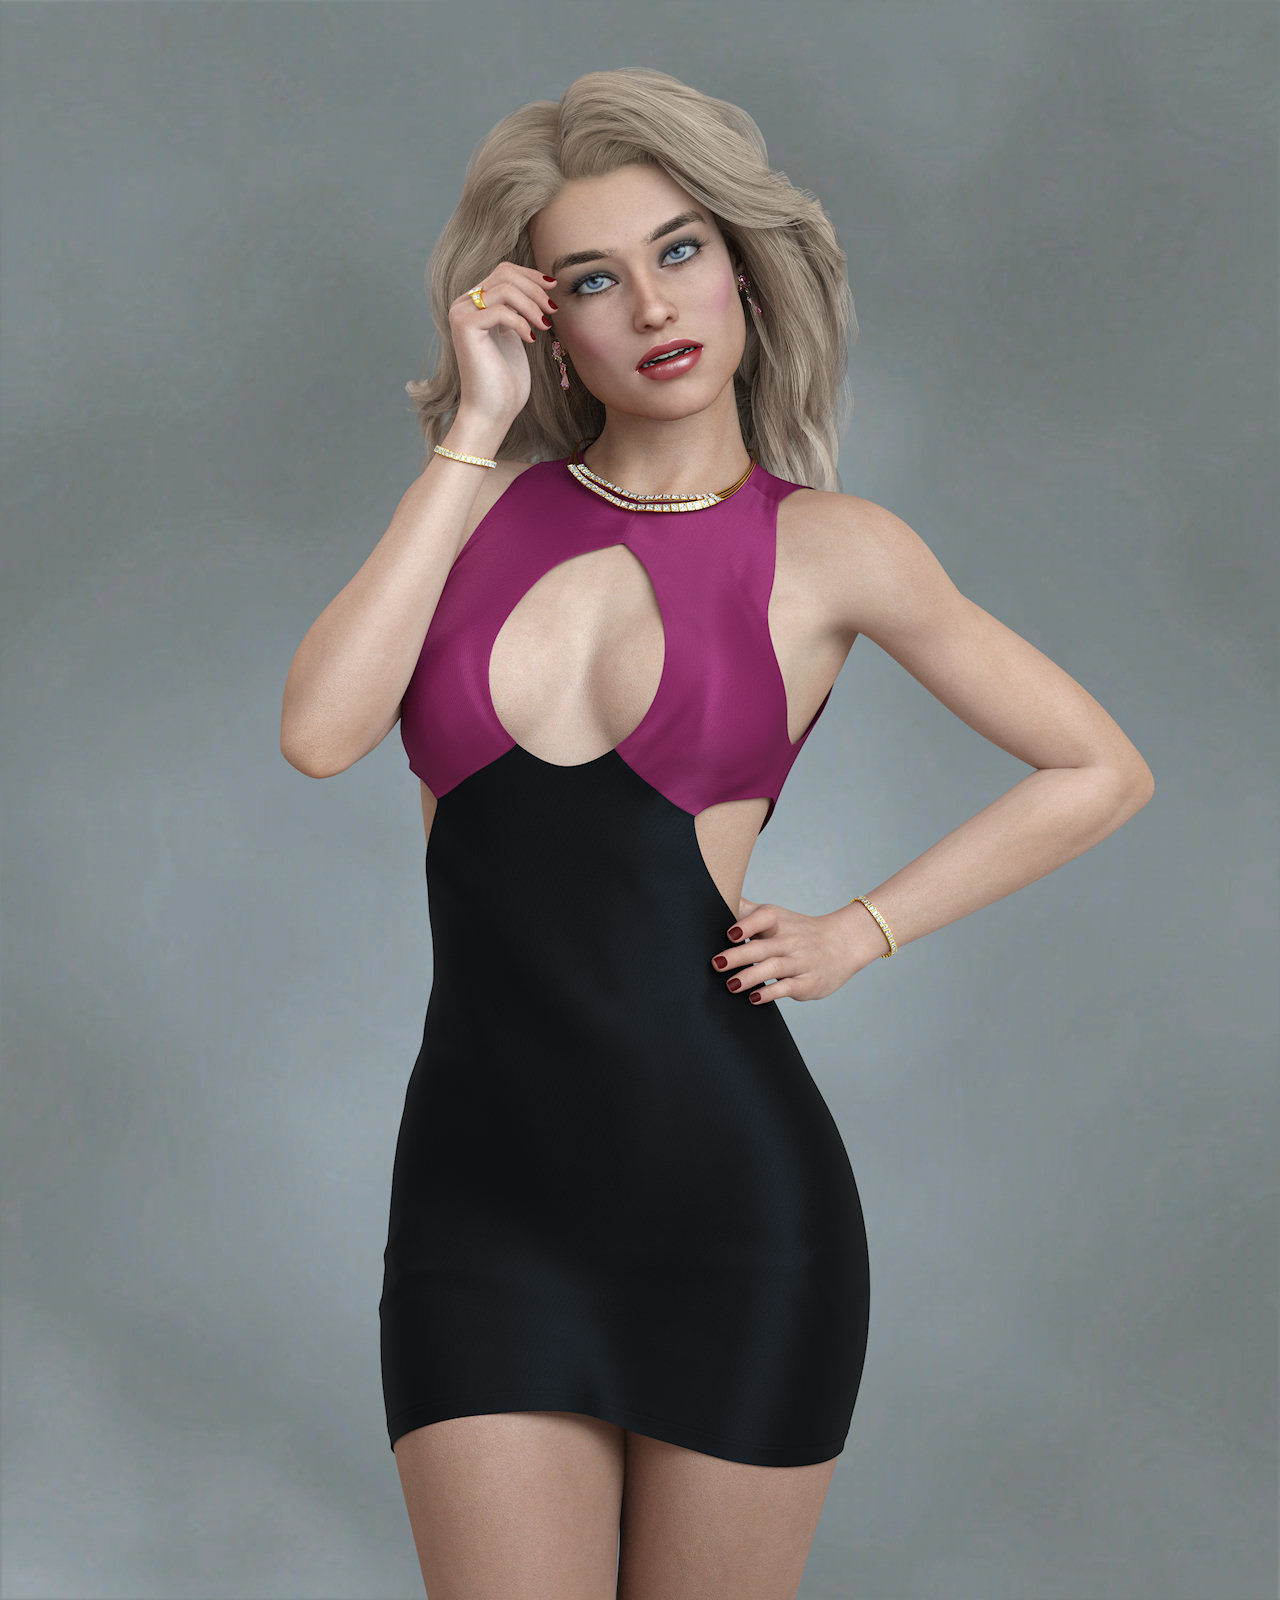 KrashWerks CAMRYN for Genesis 8 Female